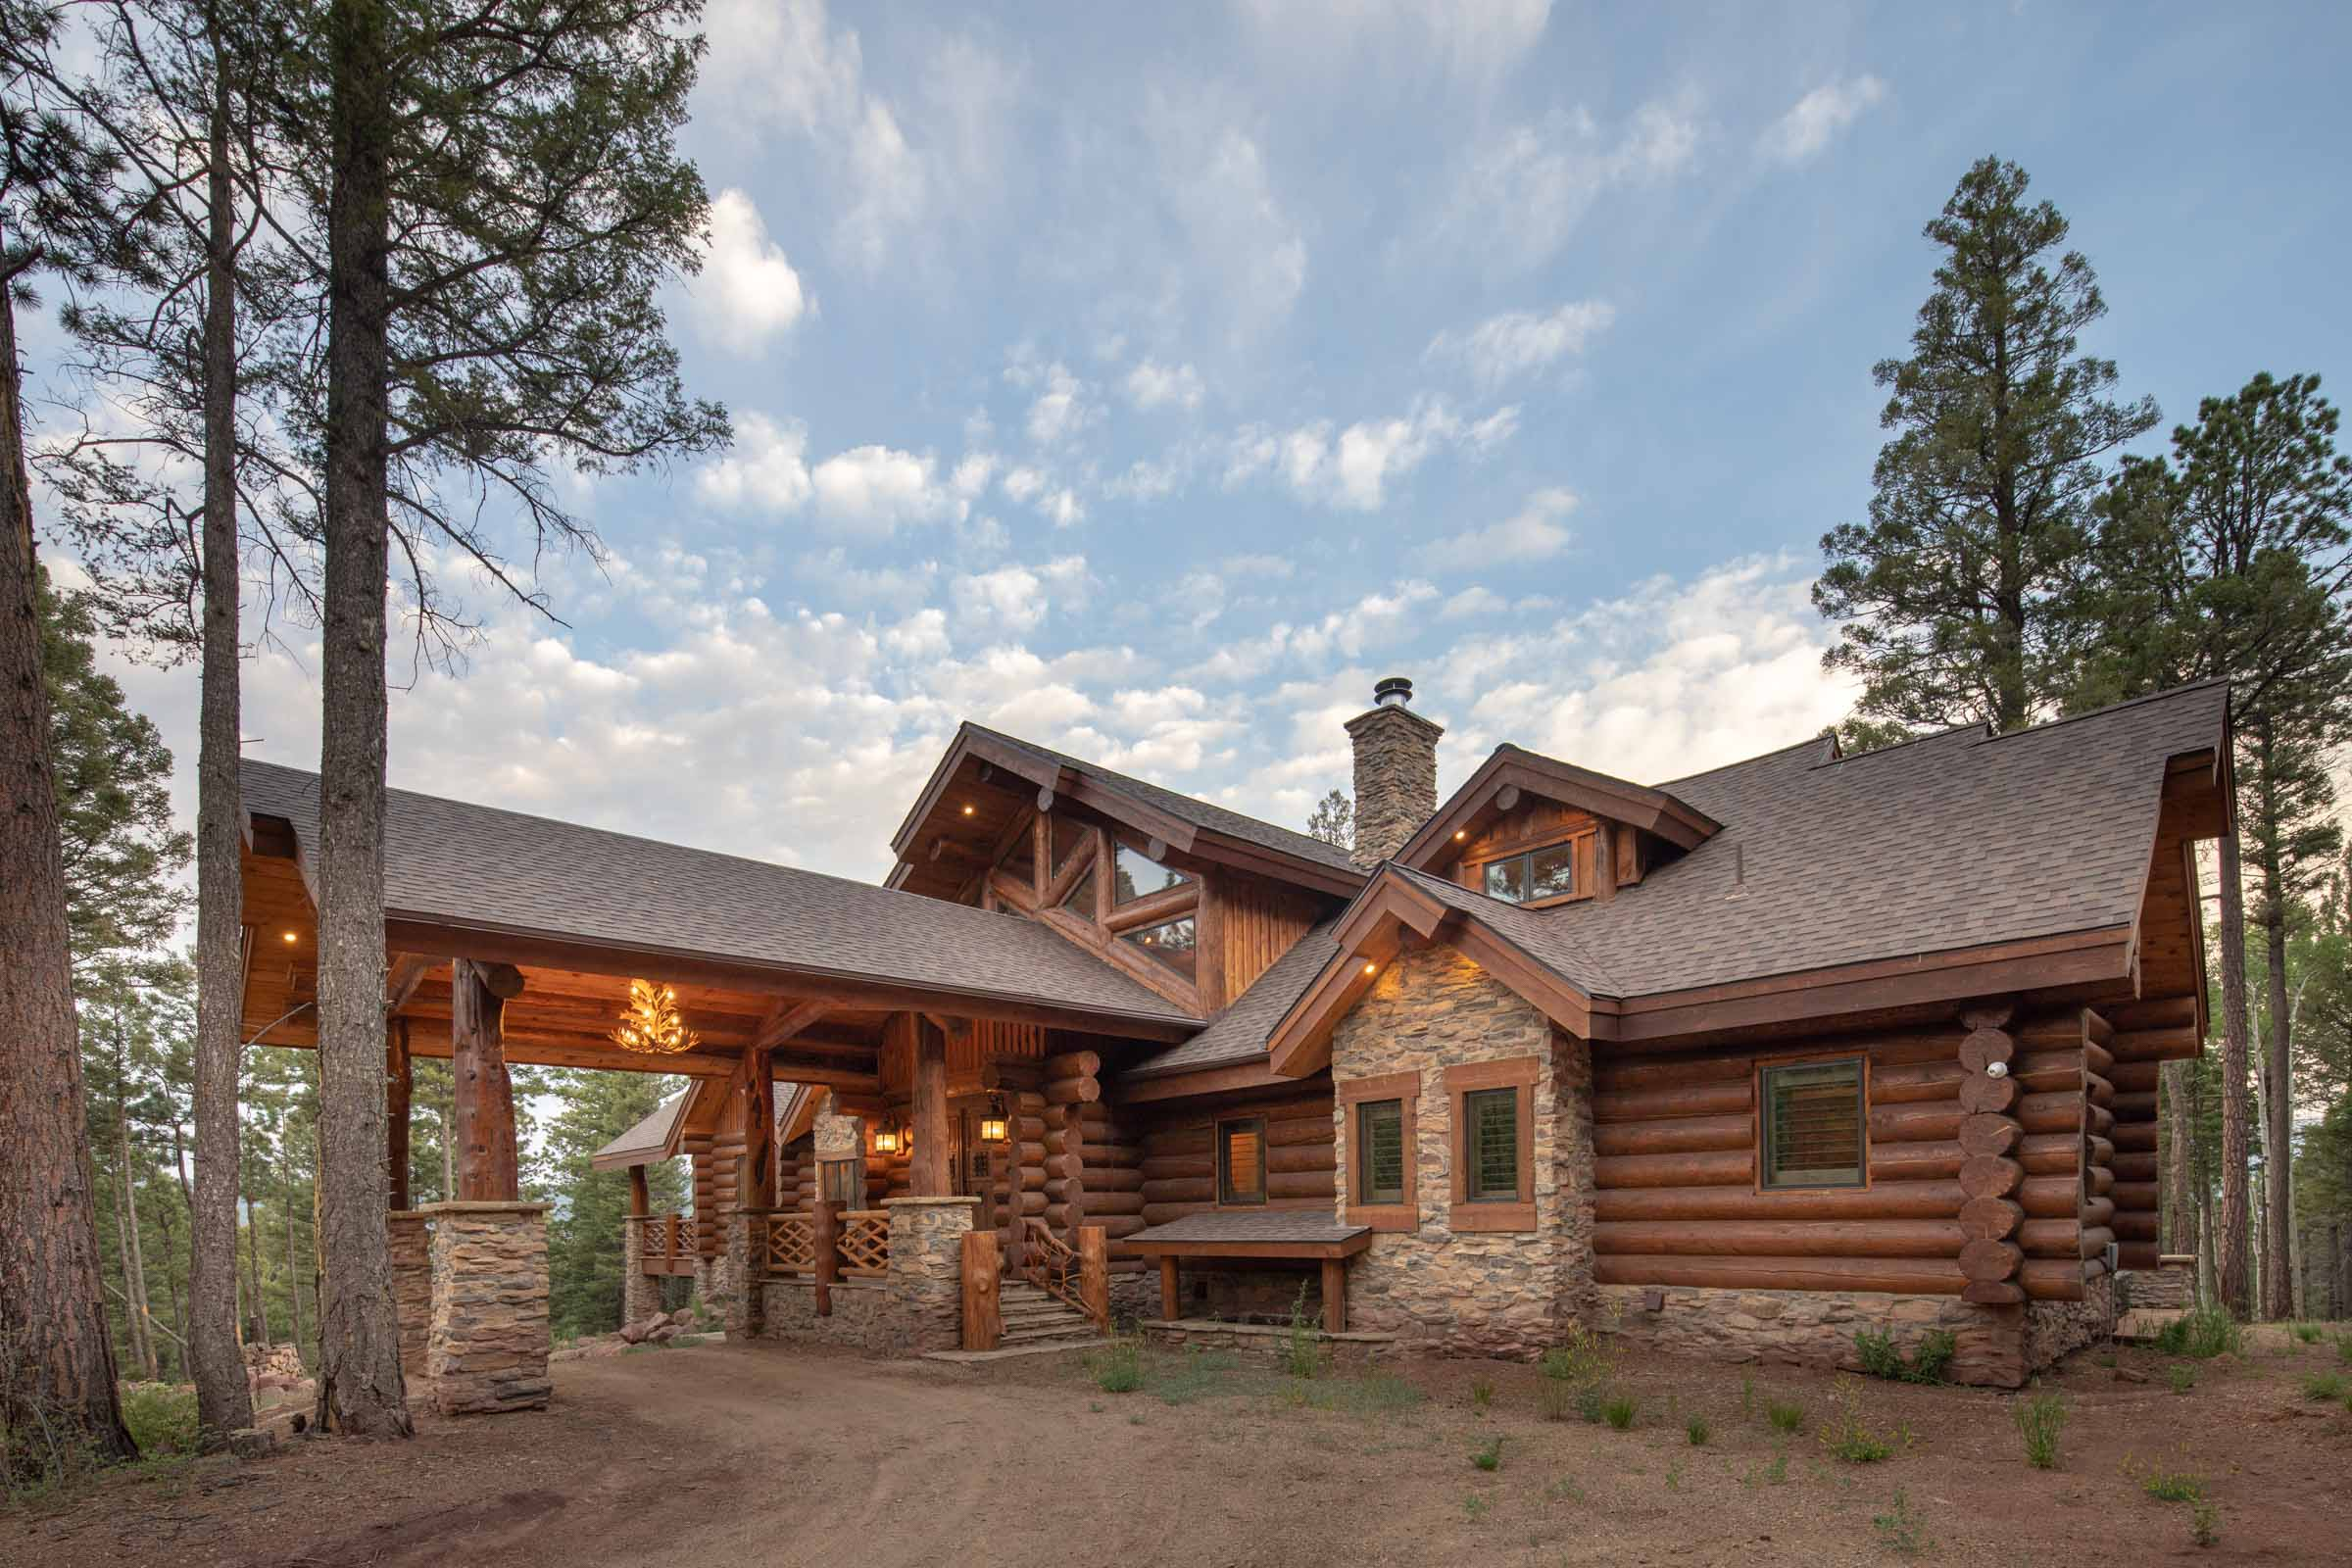 Luxury log cabin angel fire new mexico-9